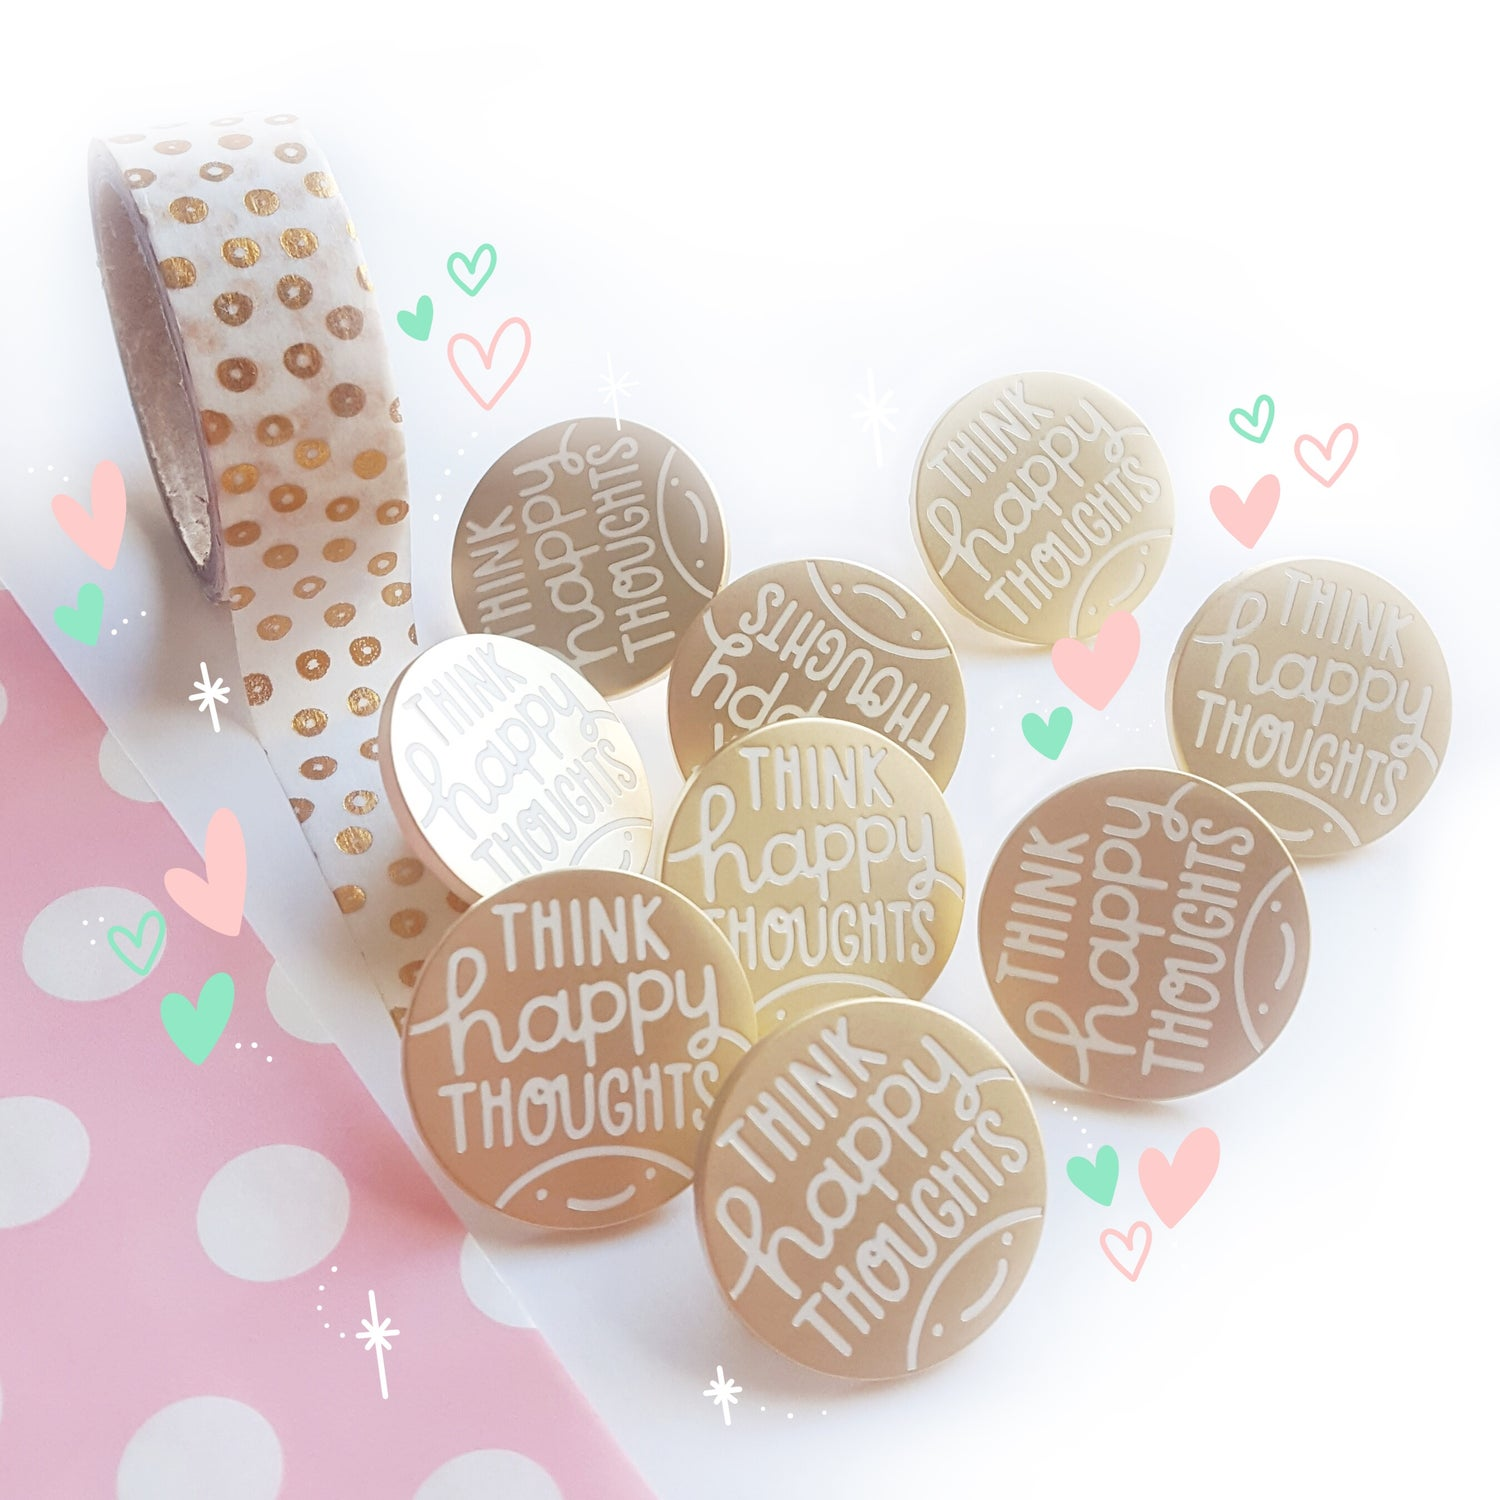 Image of Think Happy Thoughts - Matte Gold Hard Enamel Pin